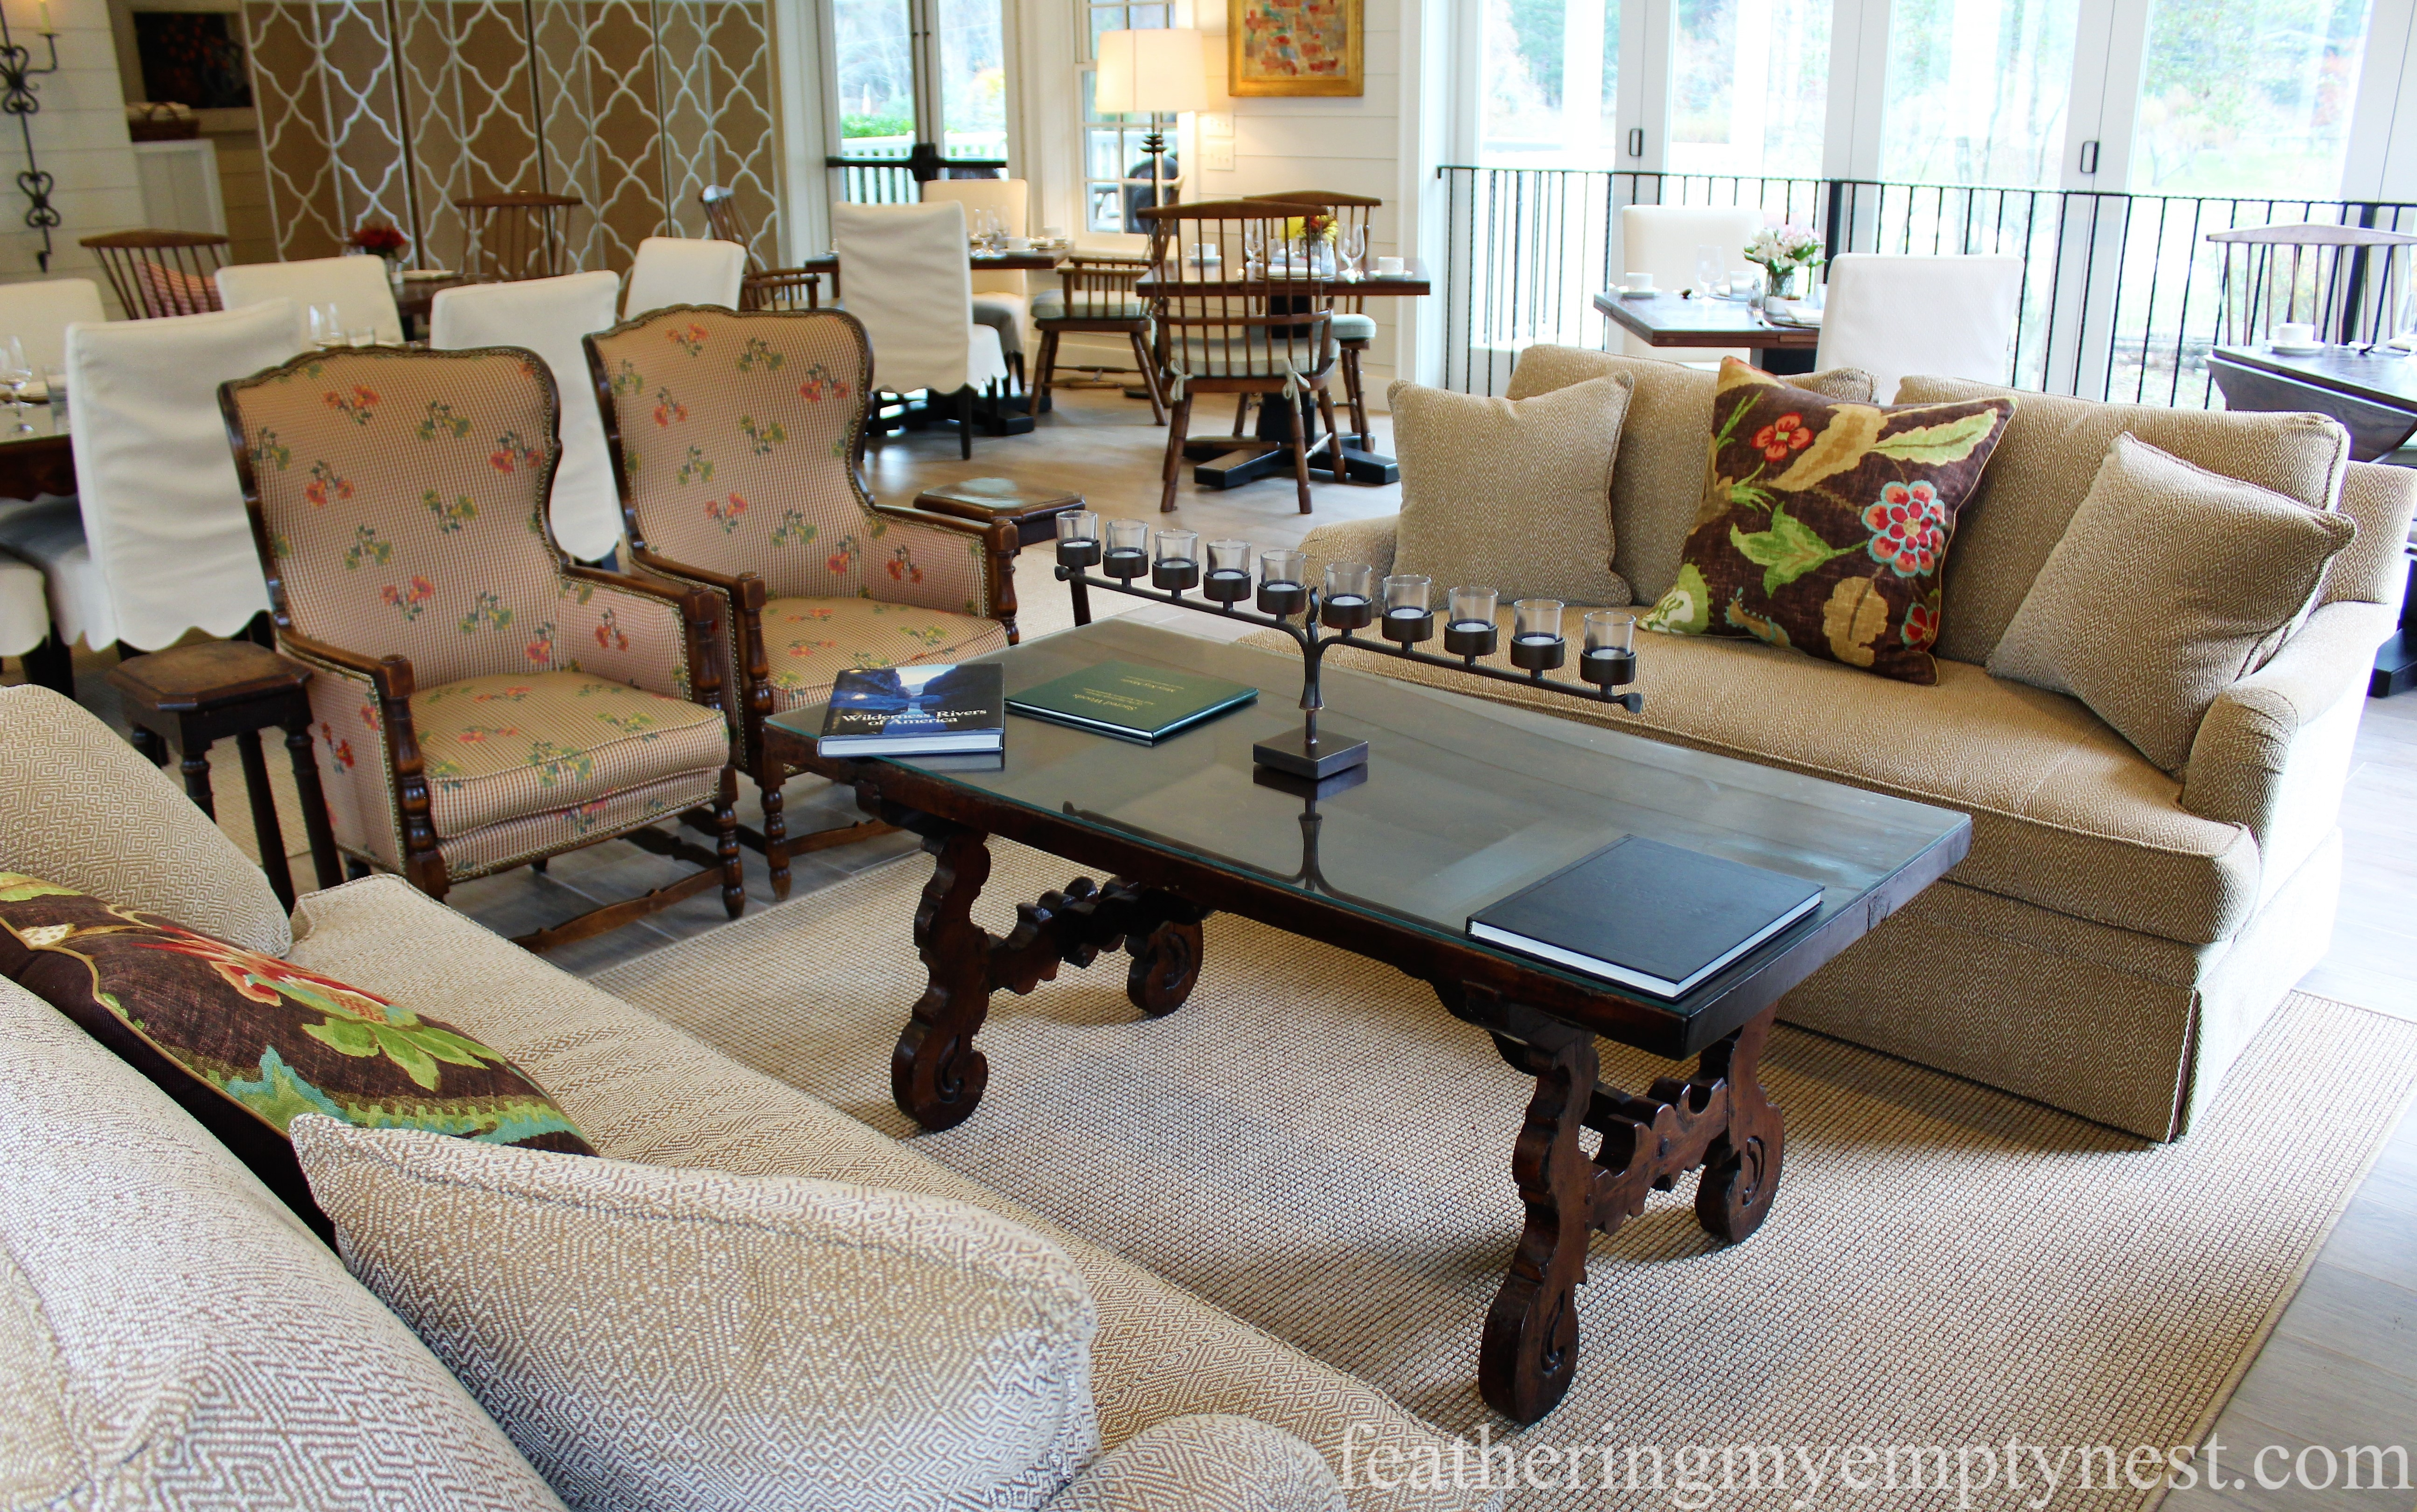 vibrant floral fabric enliven a sitting area at the Inn At Half Mile Farm --Elegant Colorful Farmhouse Style